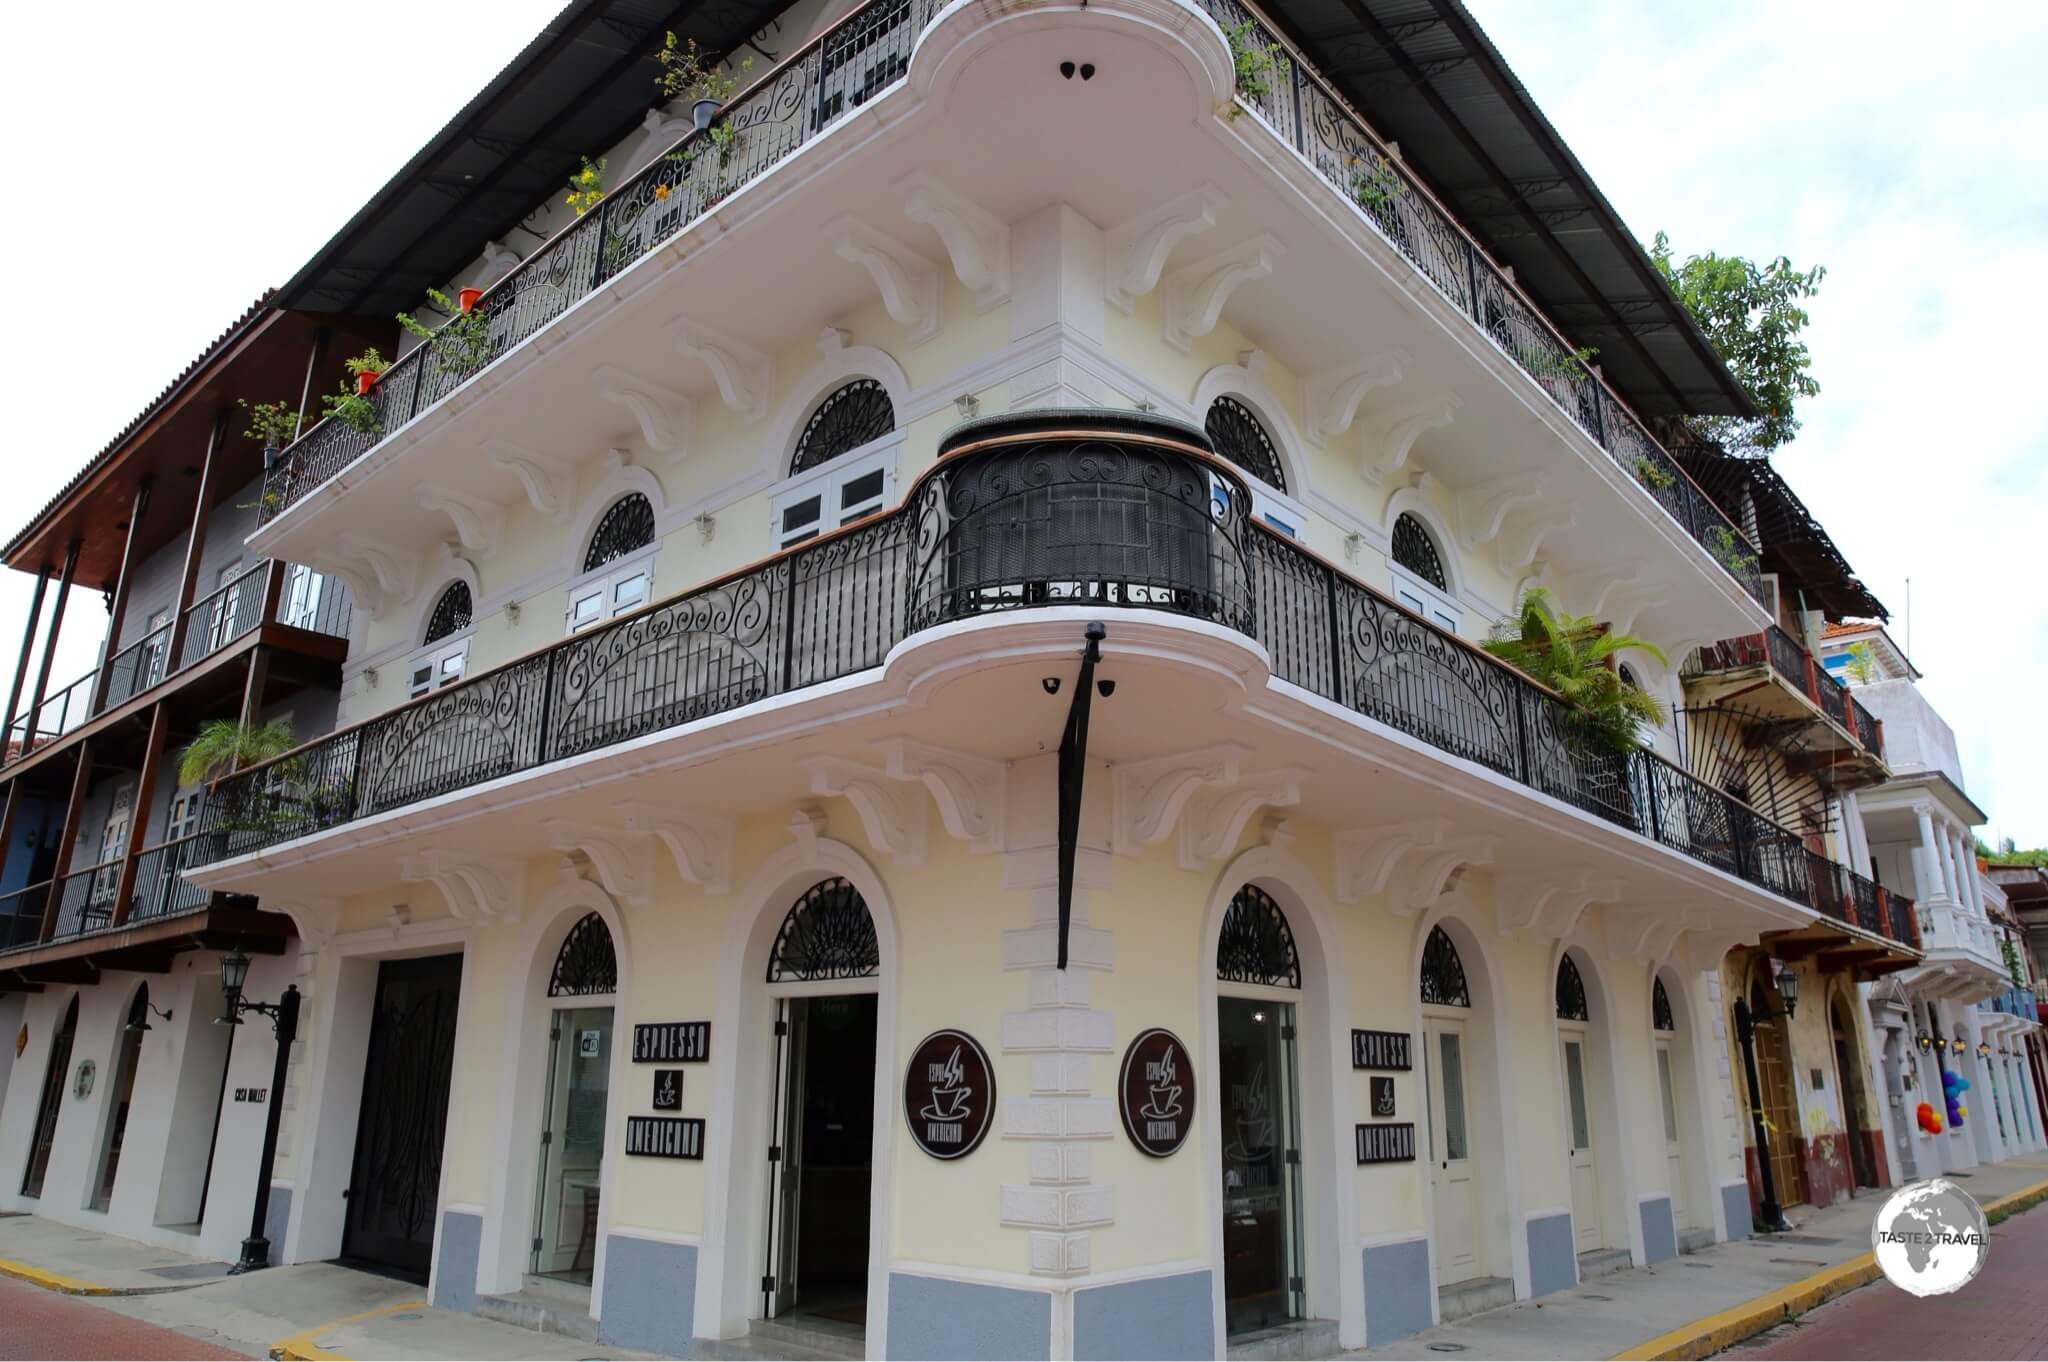 One of the oldest cities in the Americas, Panama City is full of Spanish-style architectural gems.